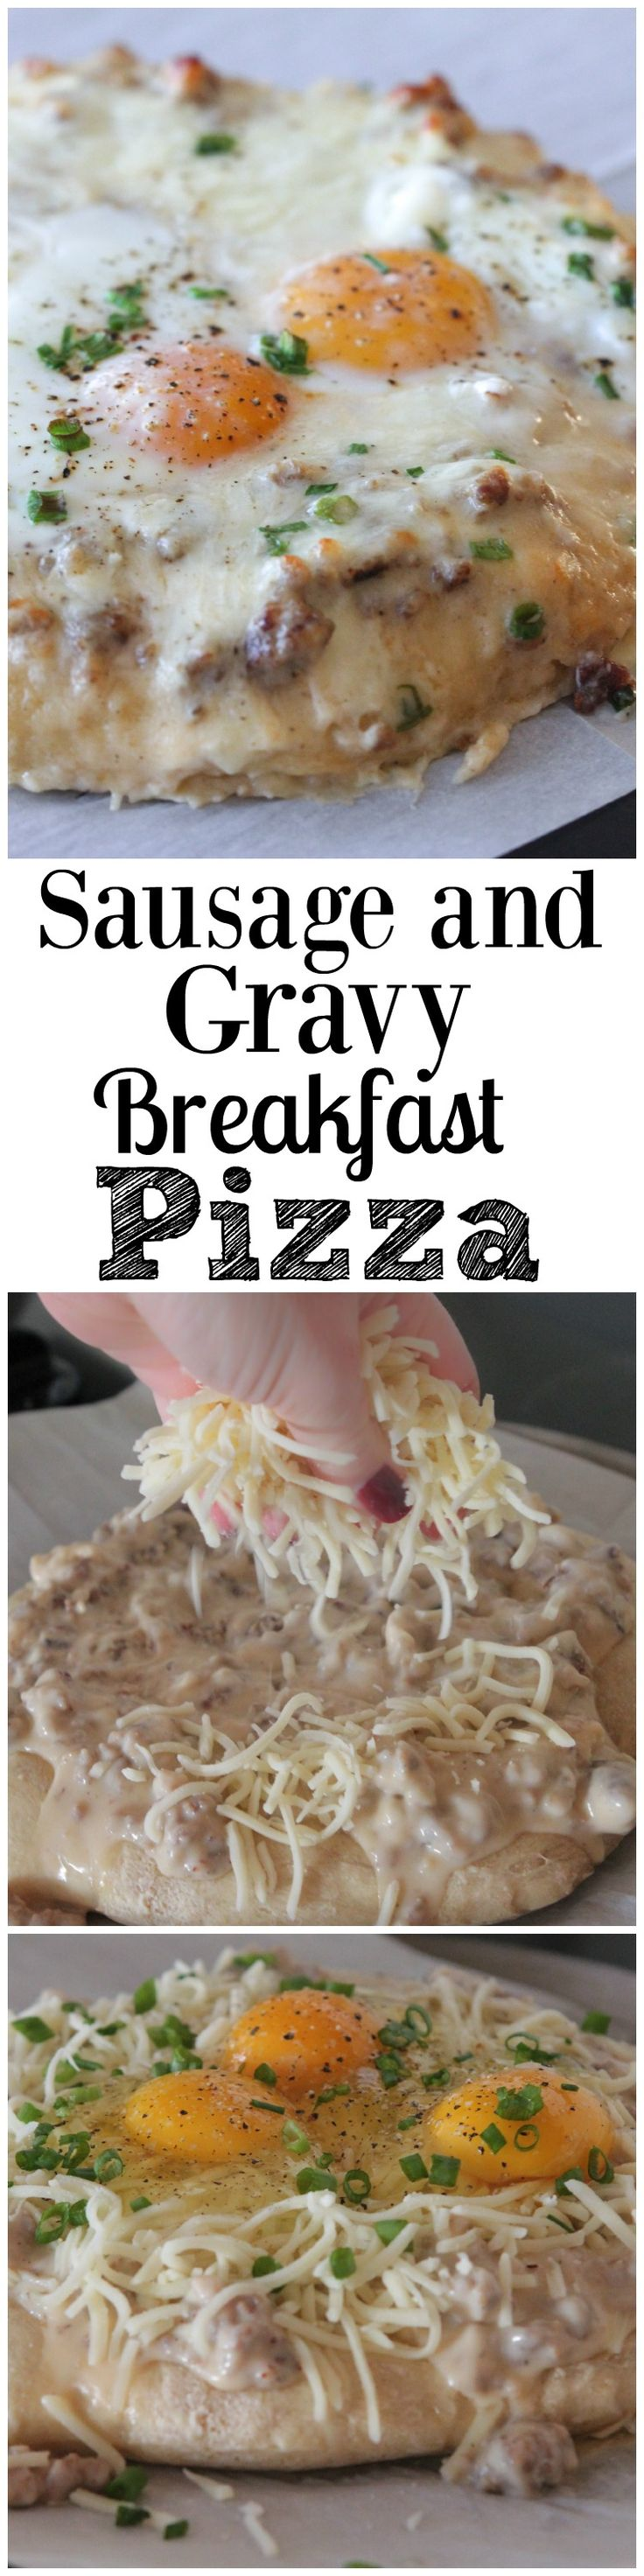 Sausage and Gravy Breakfast Pizza.  Don't miss this one!